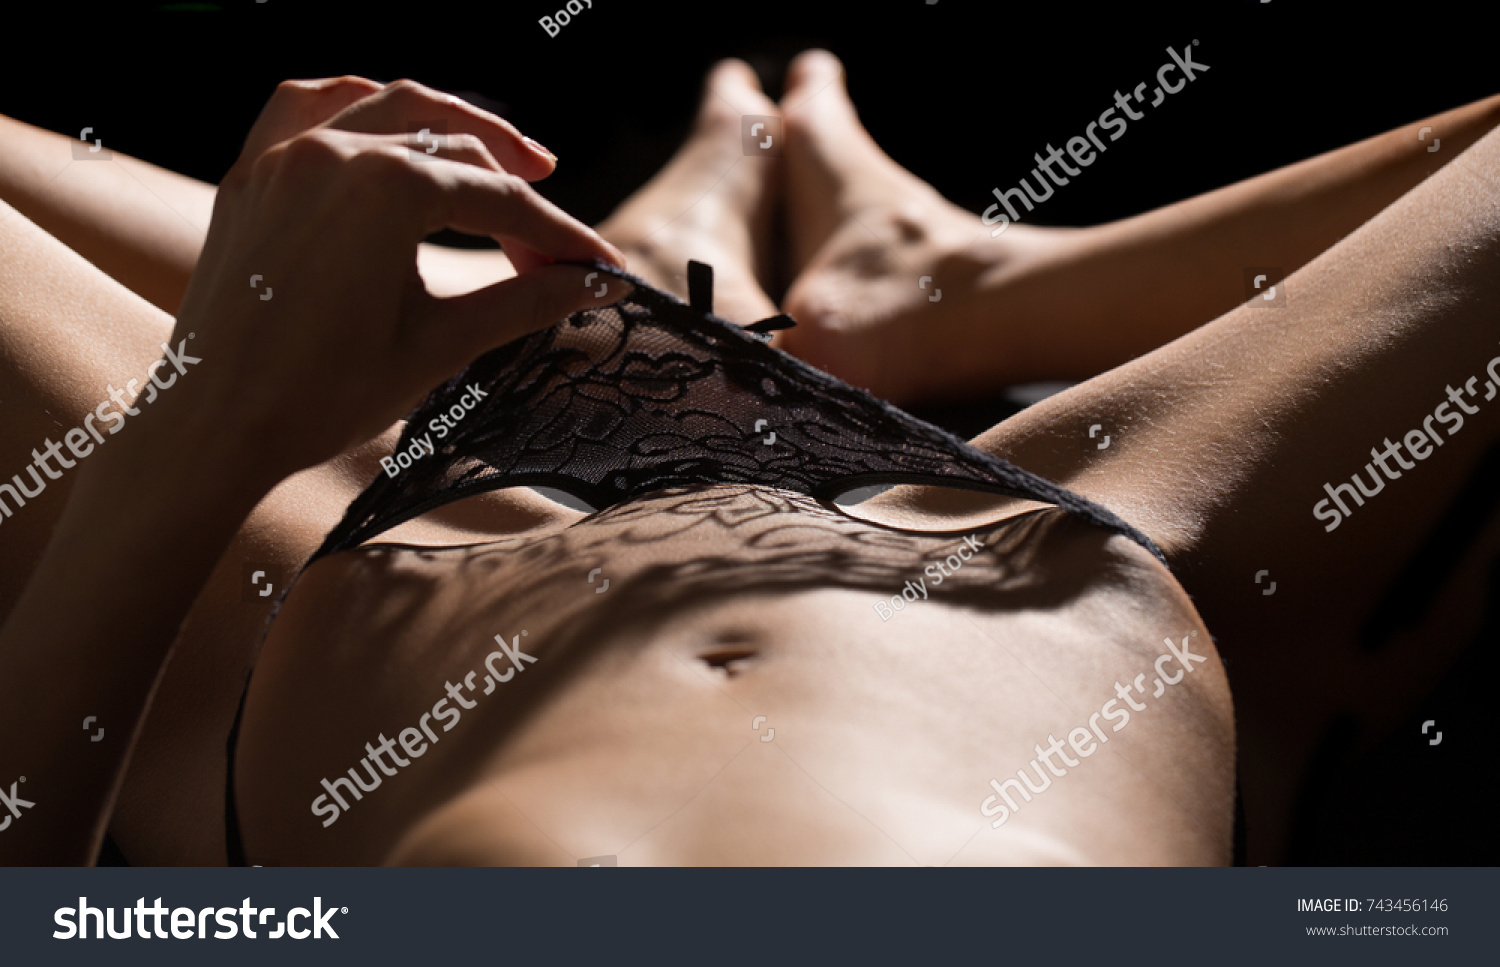 Sexy Girl Sexy Woman Woman Masturbating Stock Photo -4042